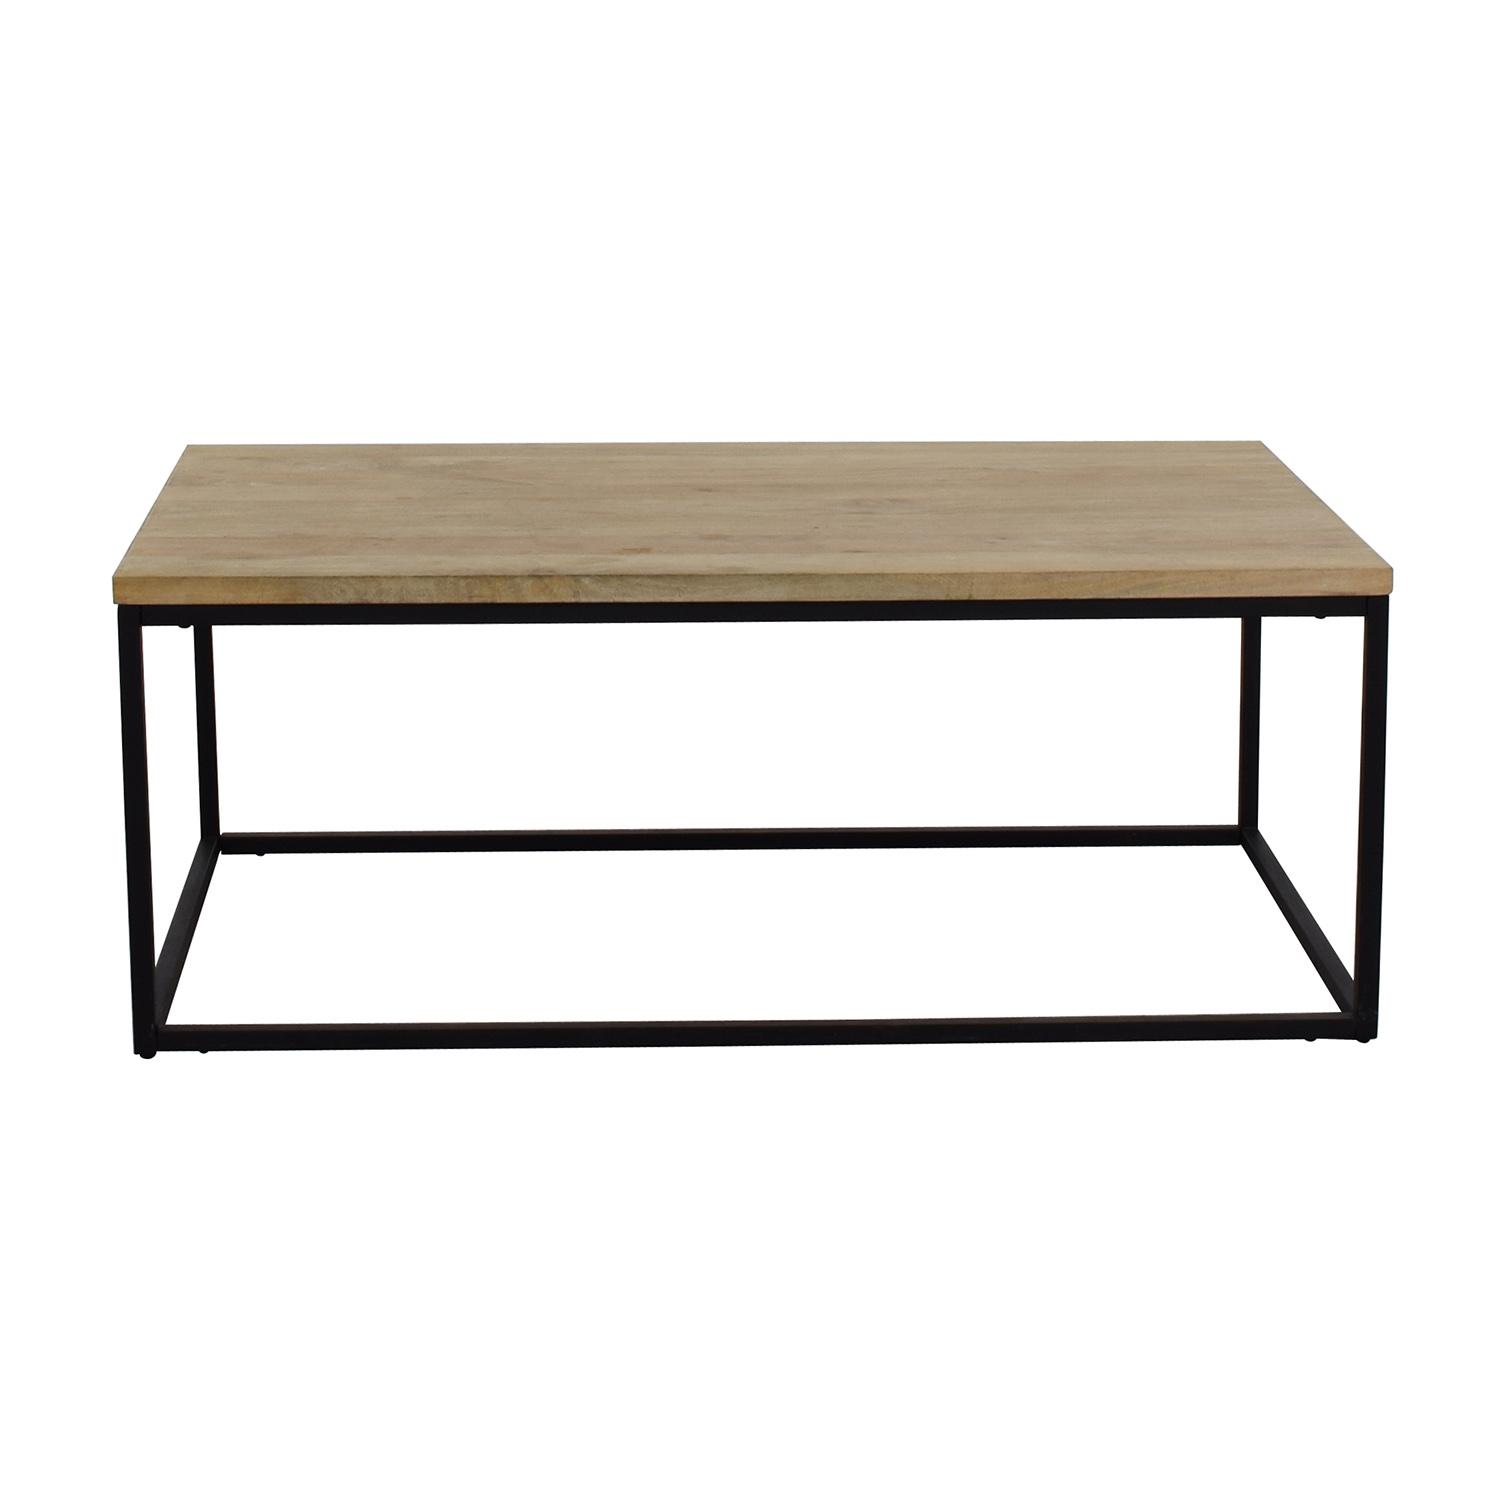 55 OFF West Elm West Elm Box Frame Coffee Table Tables